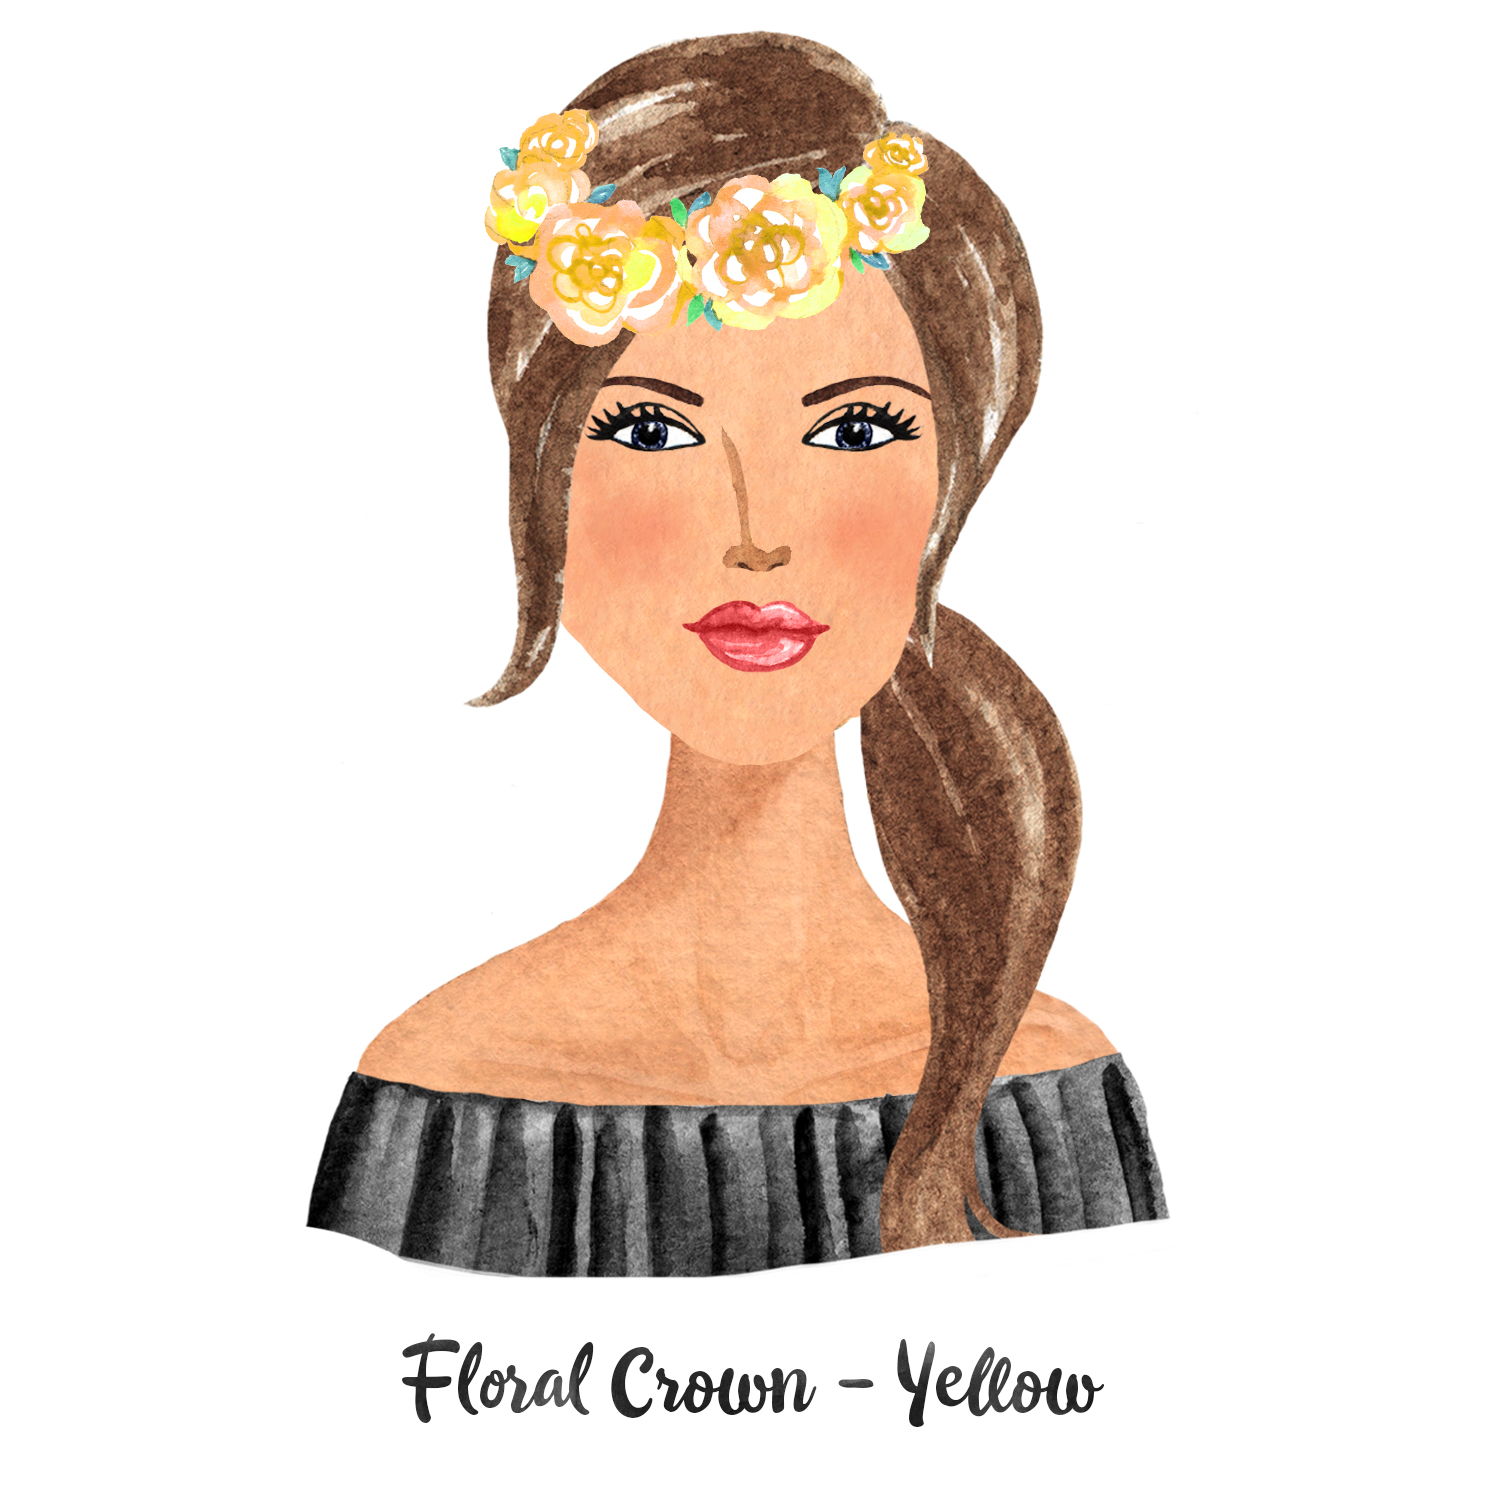 Floral Crown Yellow.jpg